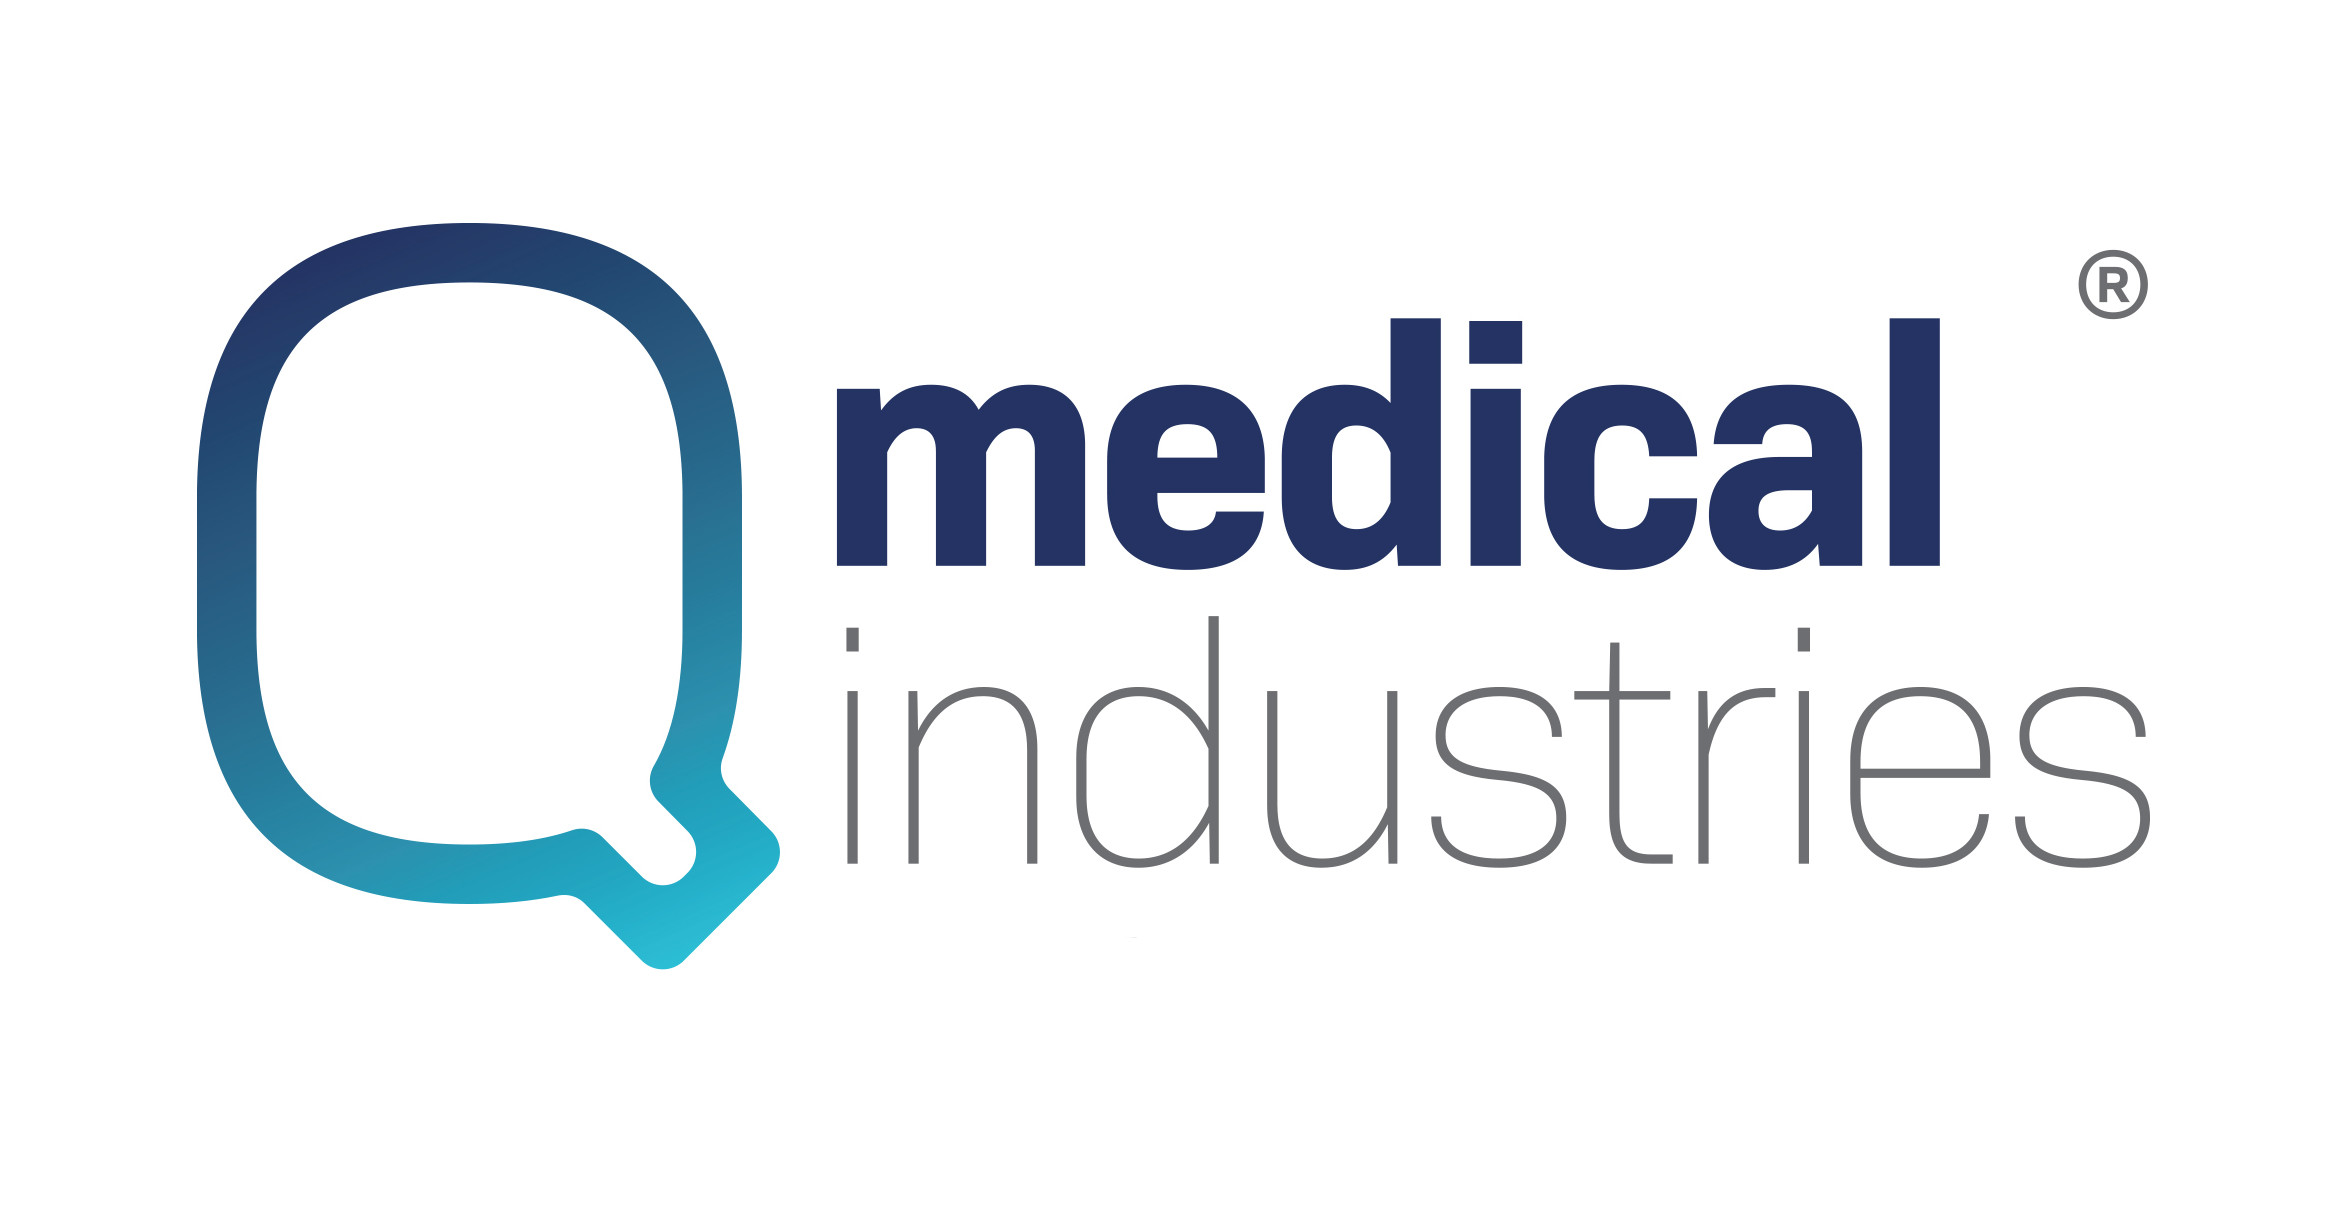 Job: chemical engineer at Q Medical Co. in Cairo, Egypt